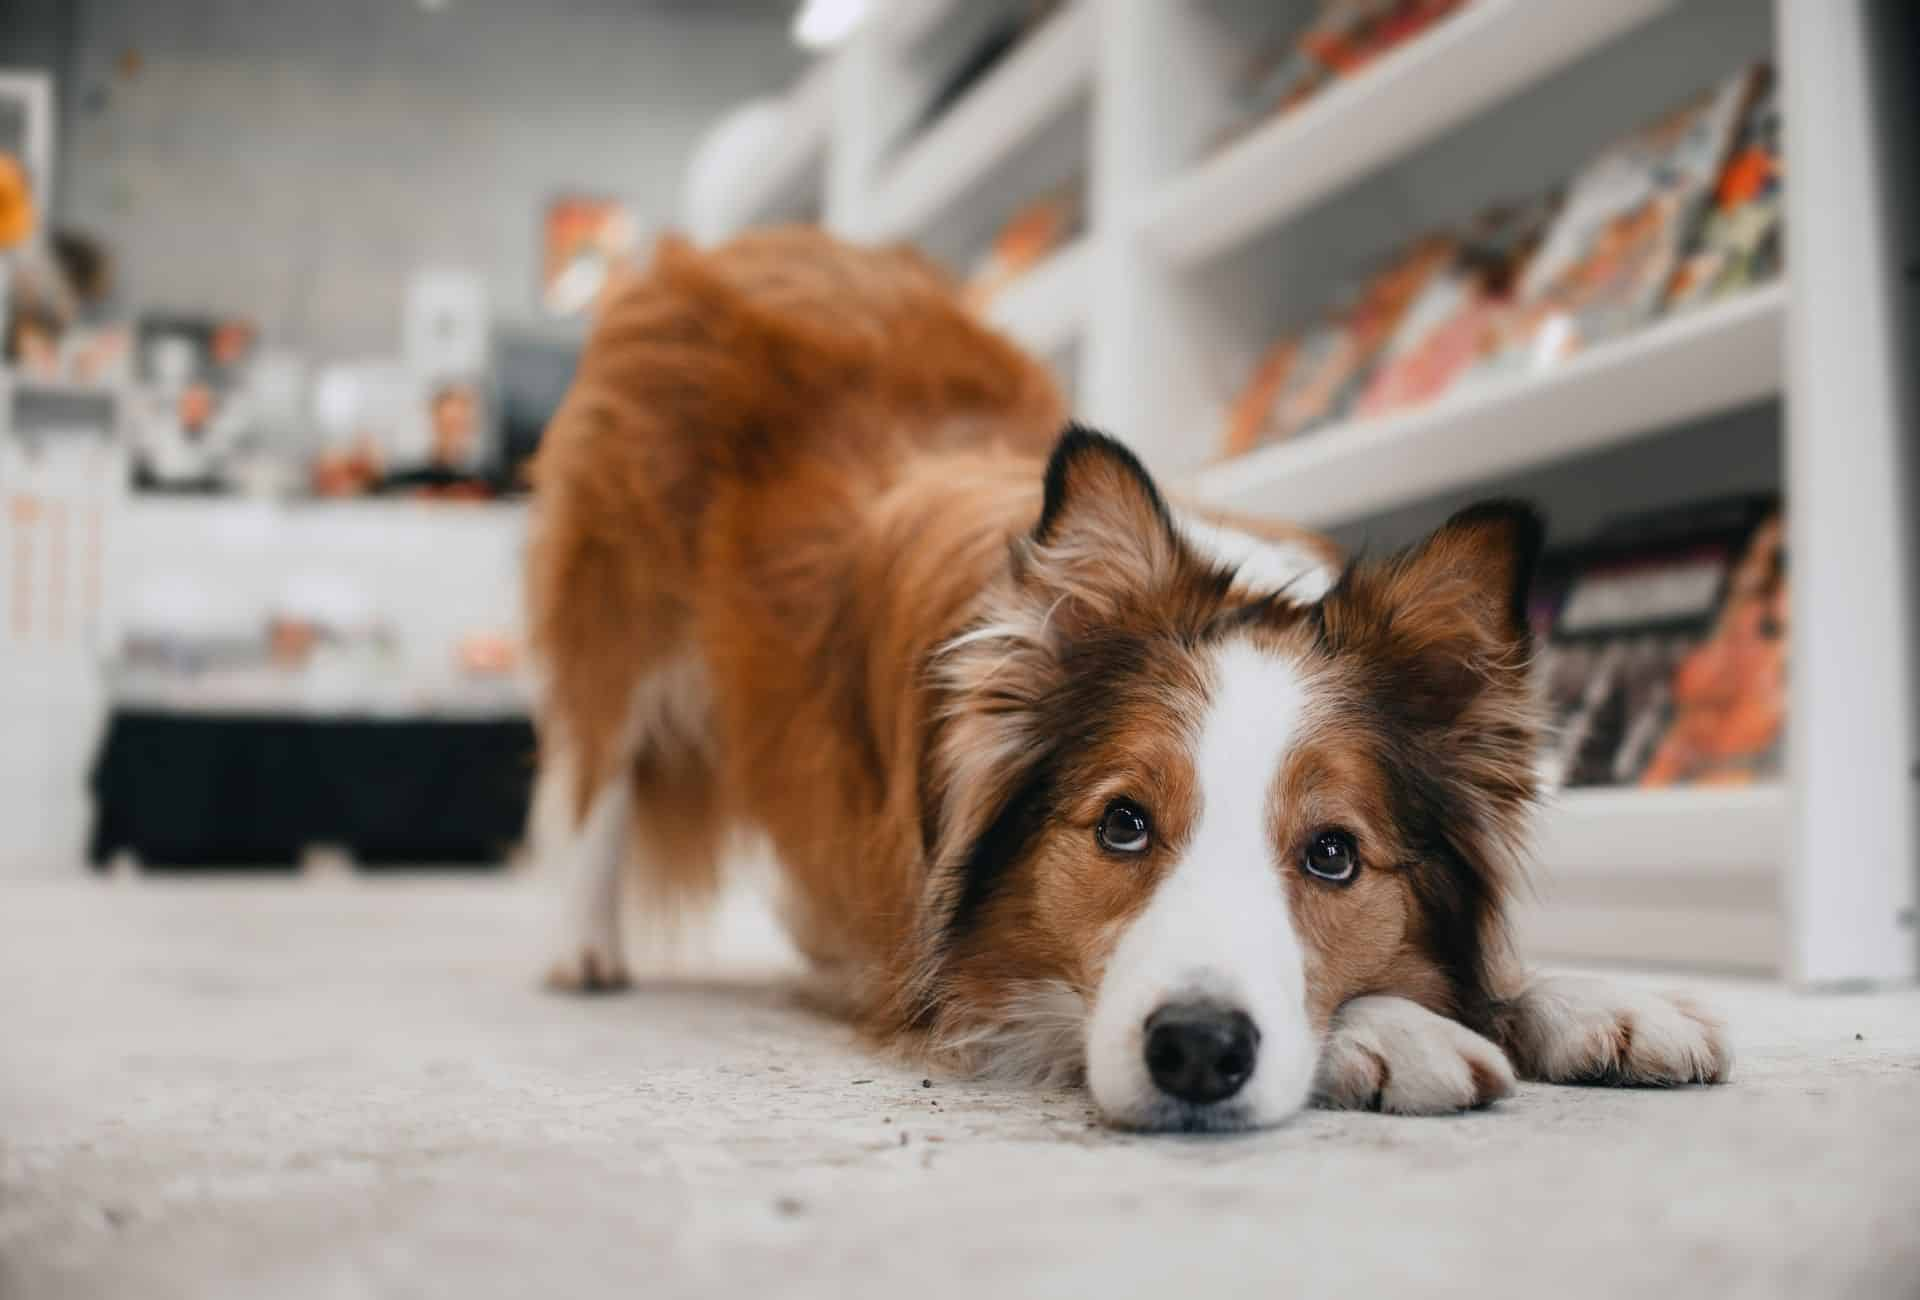 Dog is allowed inside US store and bows down with his head resting on the paws.